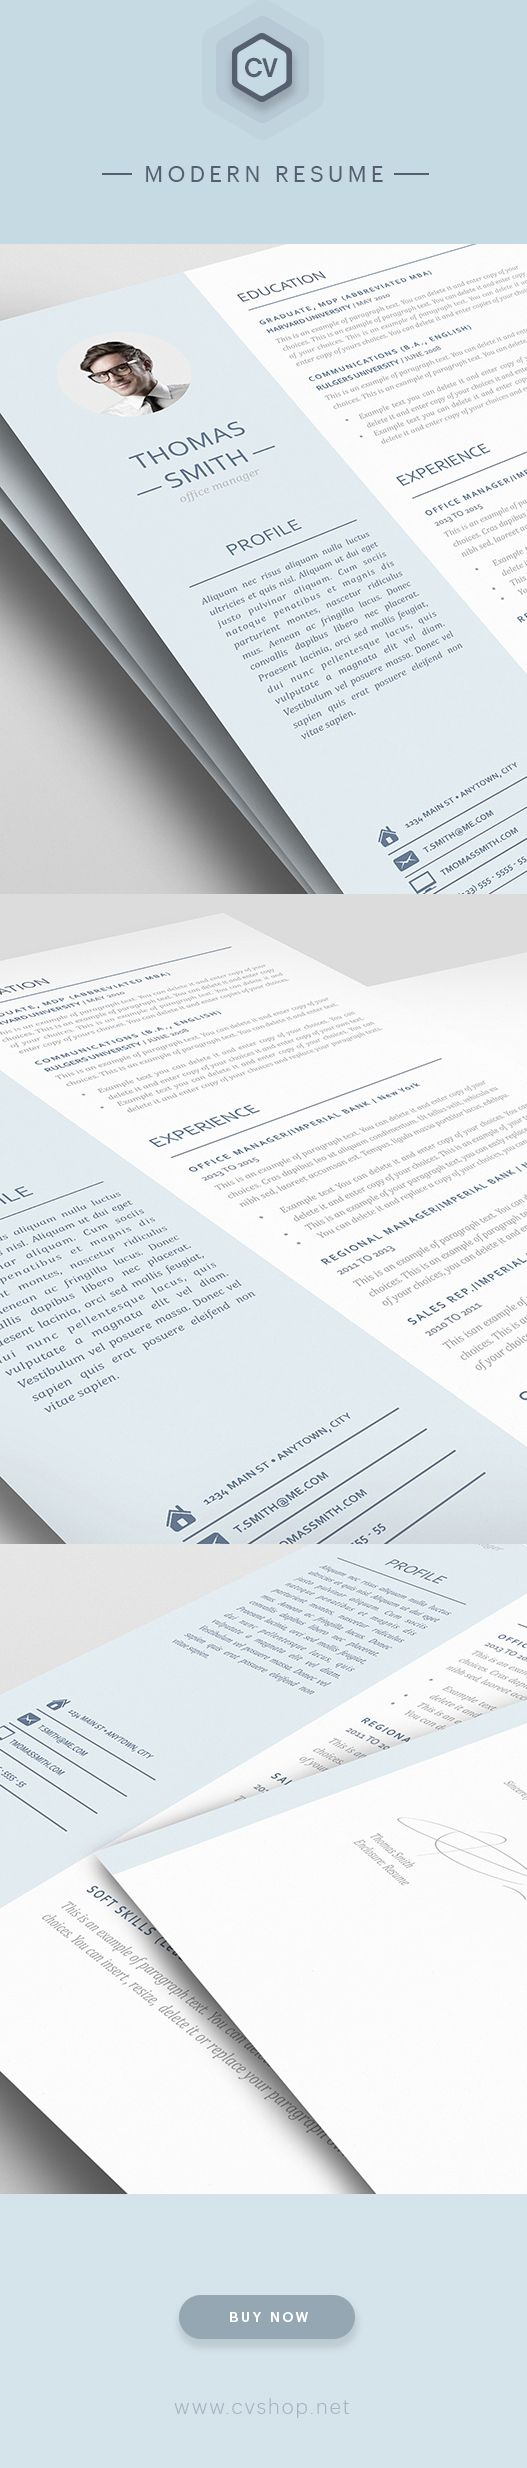 Modern Resume Template 110970 is for anyone